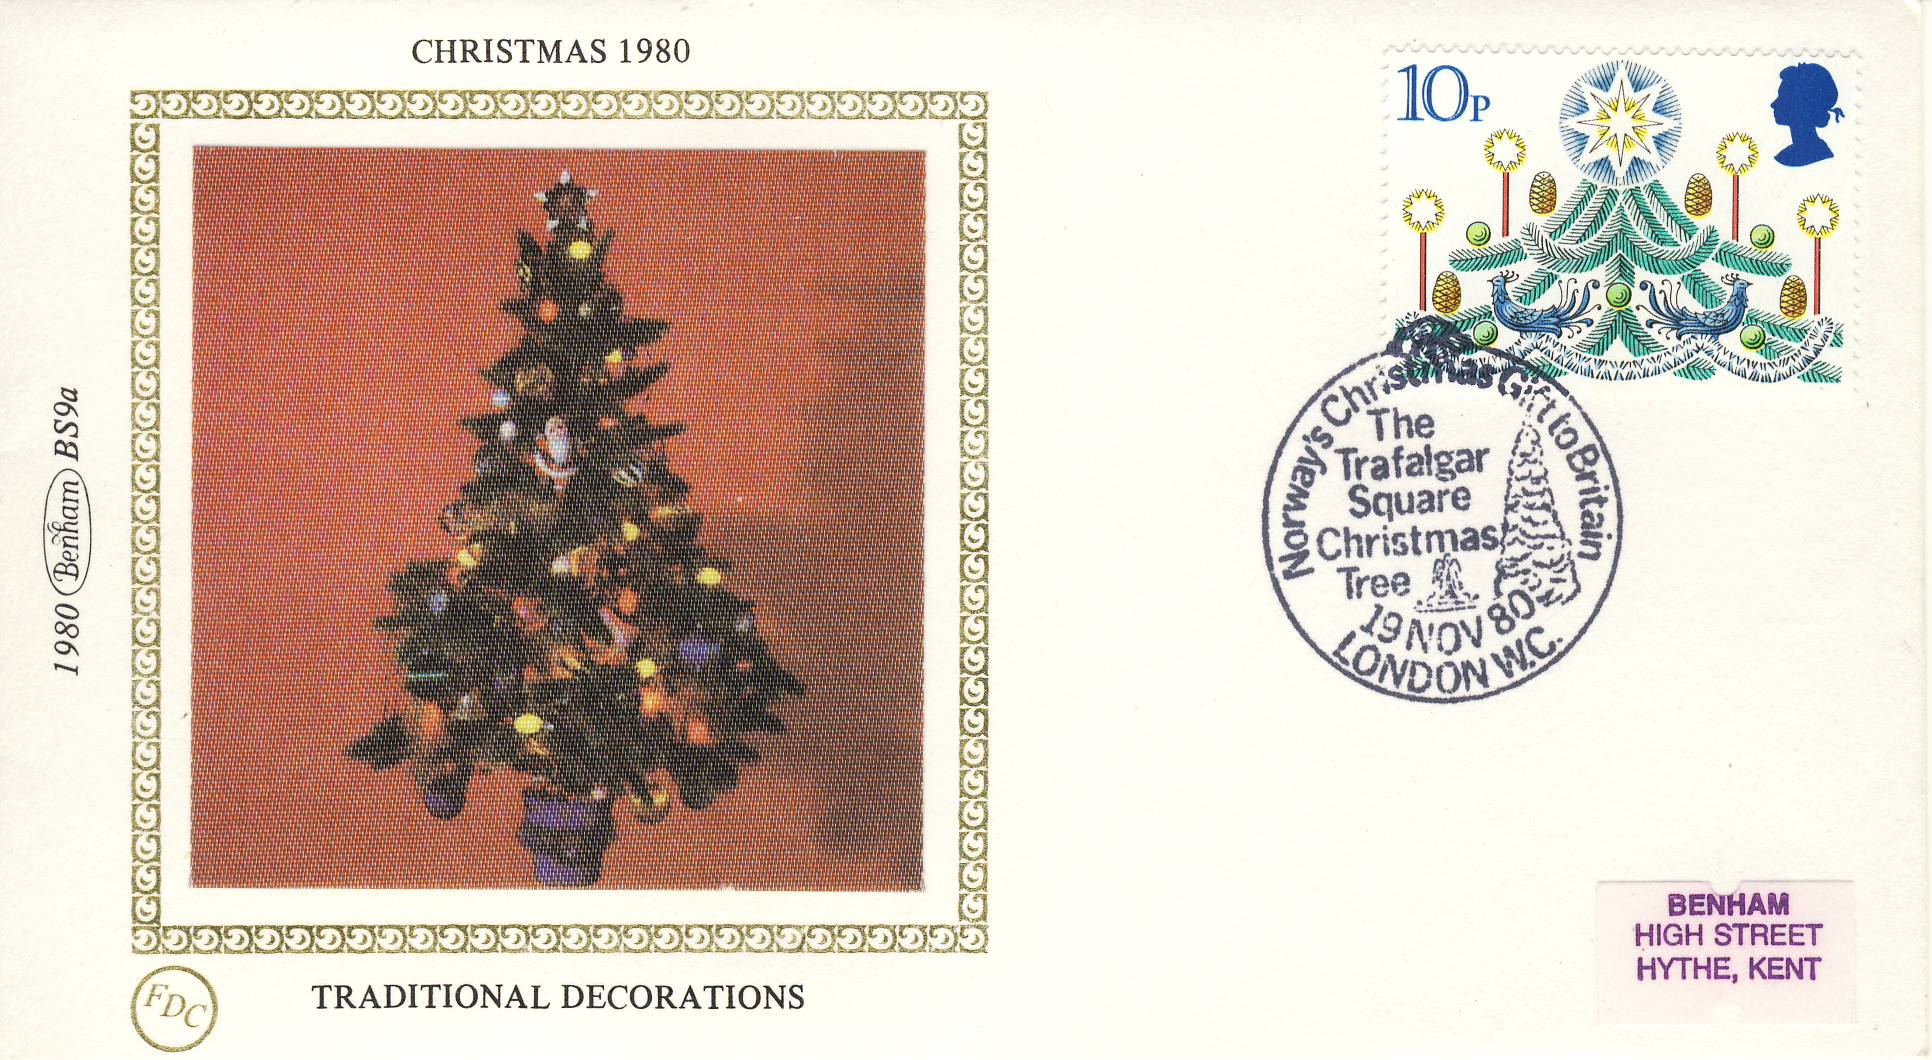 1980 CHRISTMAS BS9a Traditional Decorations FDC  Benham Sm Silk Cover refF478Postmarked Trafalgar Square Christmas Tree Norway's Gift to Britain. Very good condition. Unsealed with insert card. Ideal for gift